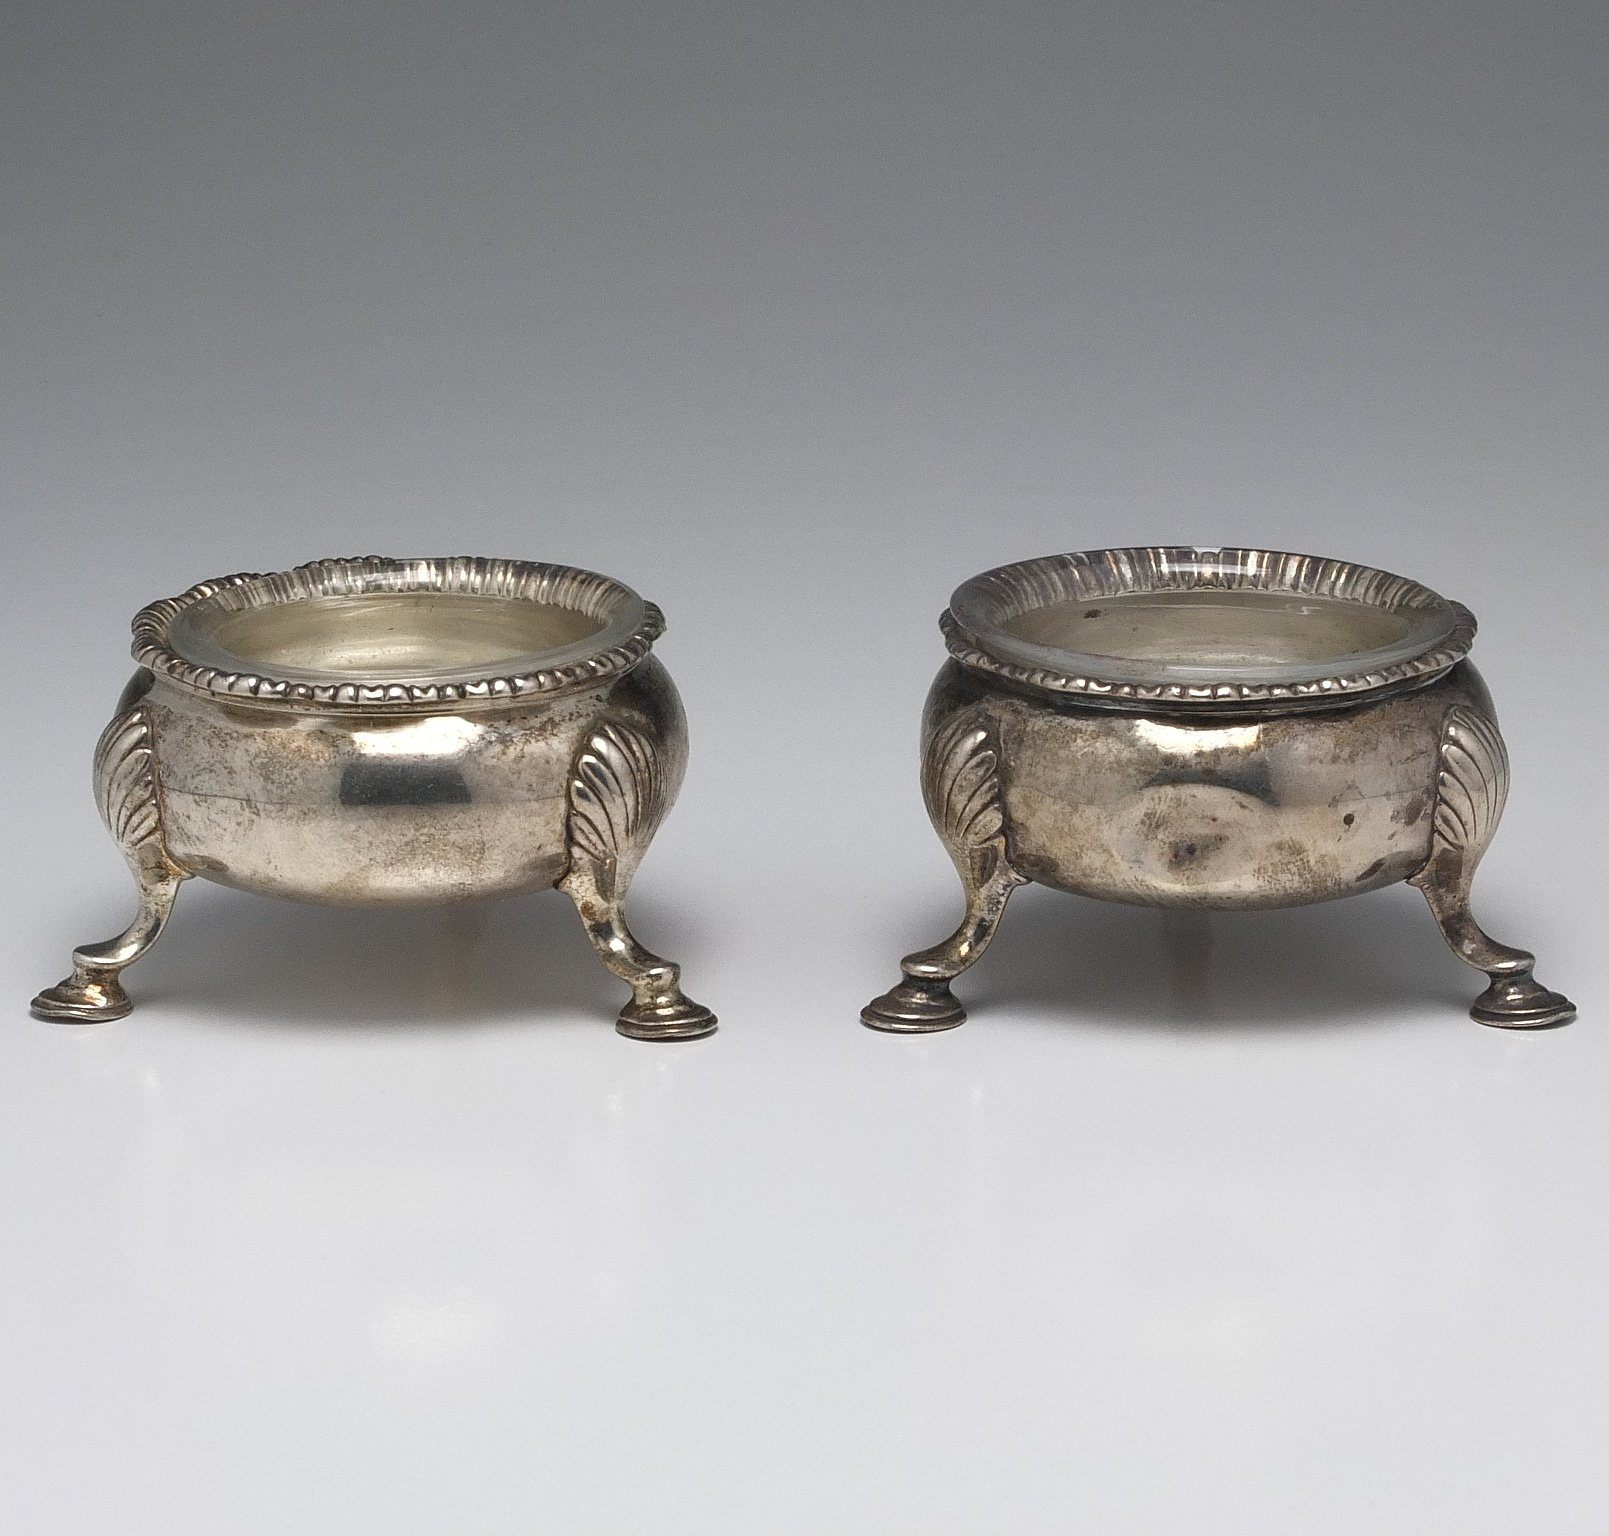 'Pair of George II Sterling Silver Open Salts with Shell Form Feet London Circa 1749'